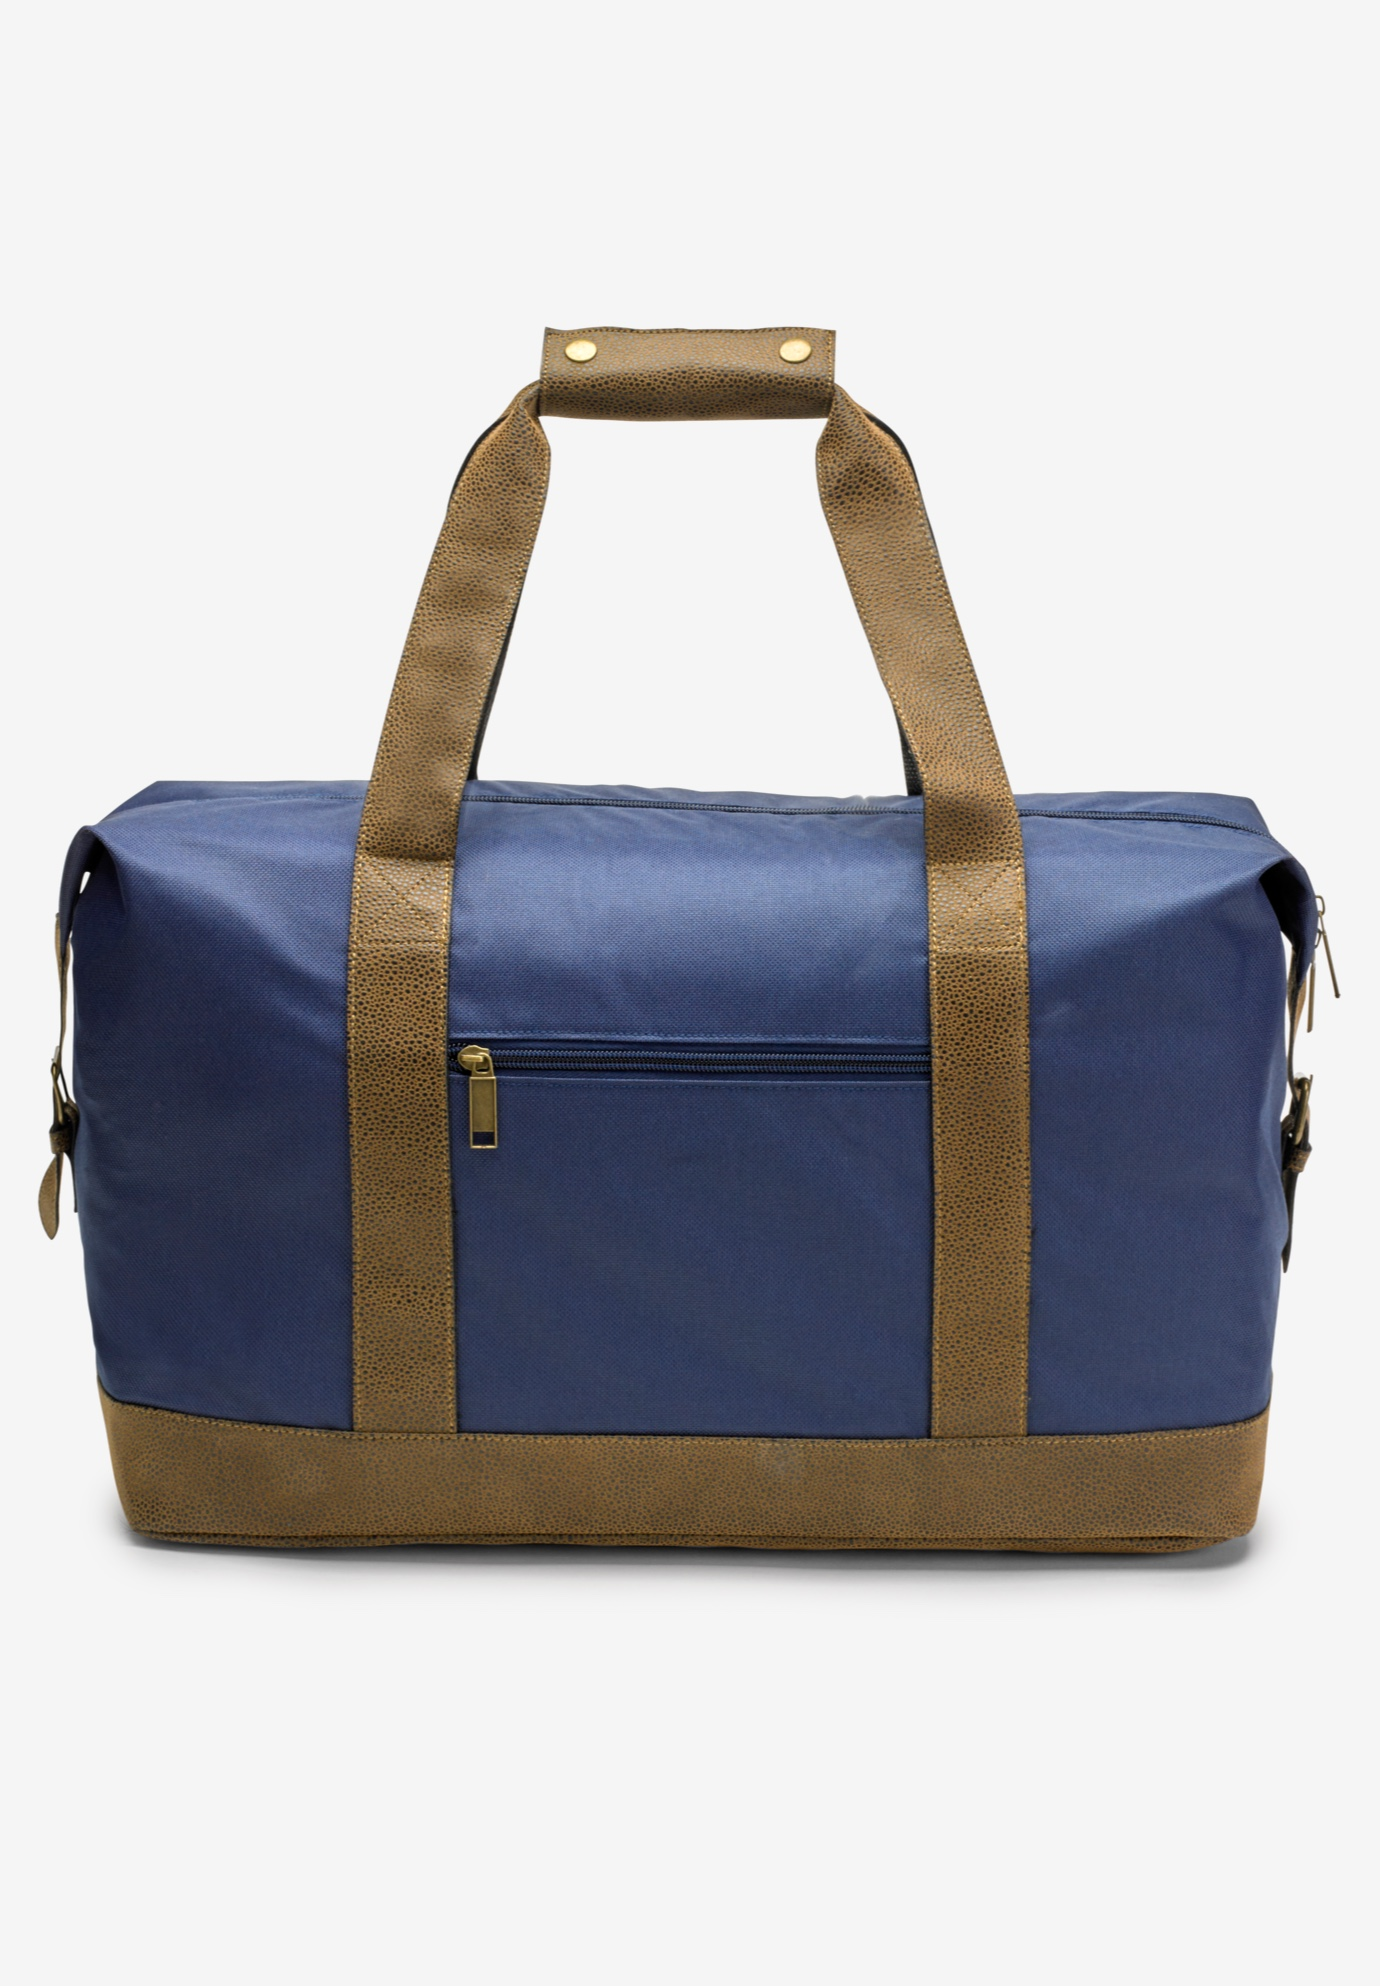 Canvas Duffle Bag With Suede Details, NAVY